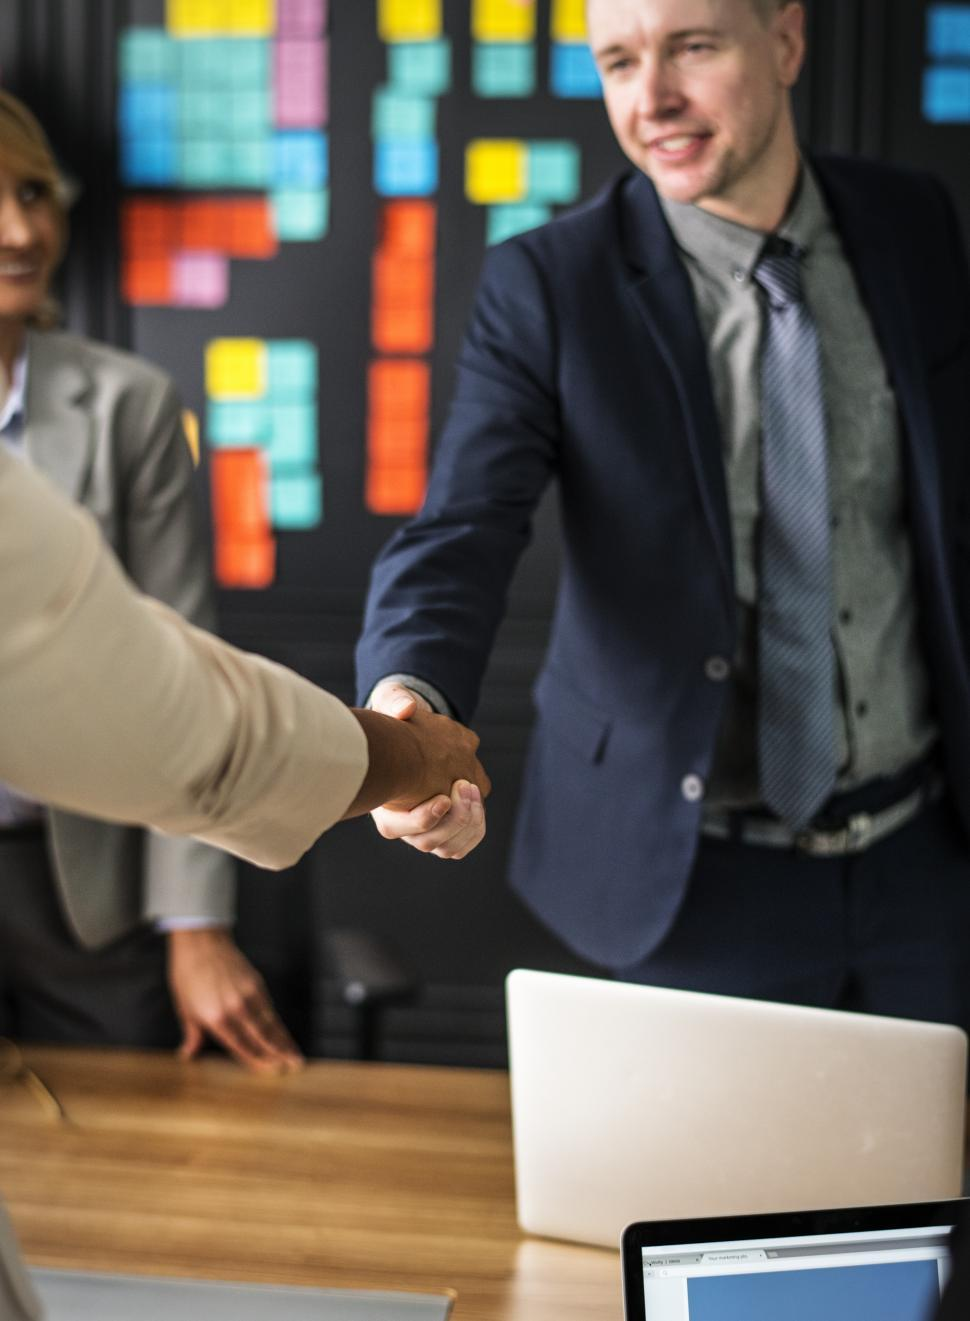 Download Free Stock HD Photo of Shaking hands after a meeting Online